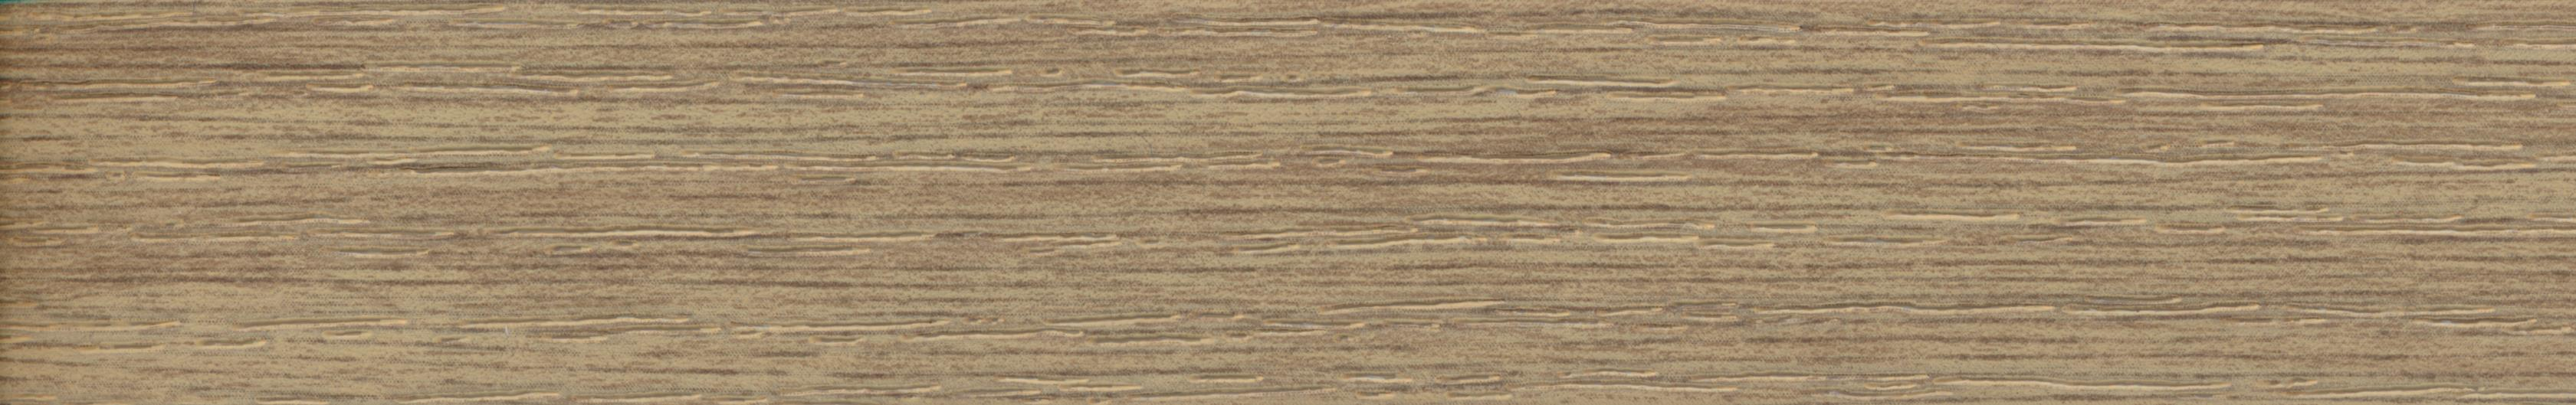 Arauco WF440:GINGER 15/16x1mm CP21042 EMB LAC 600' CO